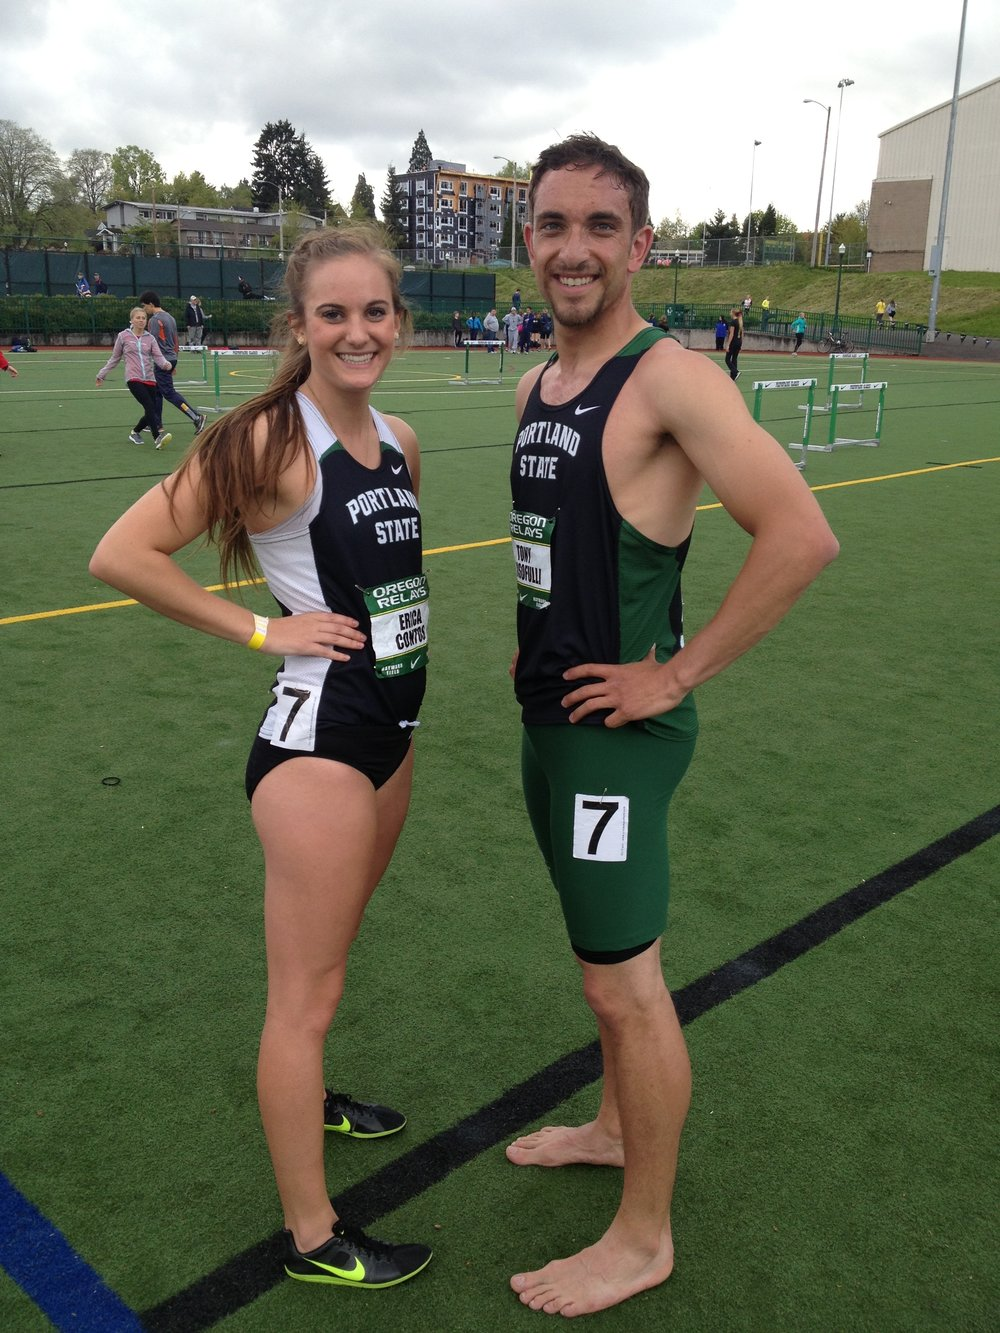 Erica Contos (left) all smiles with her Portland State teammate Tony in the early 2010s.